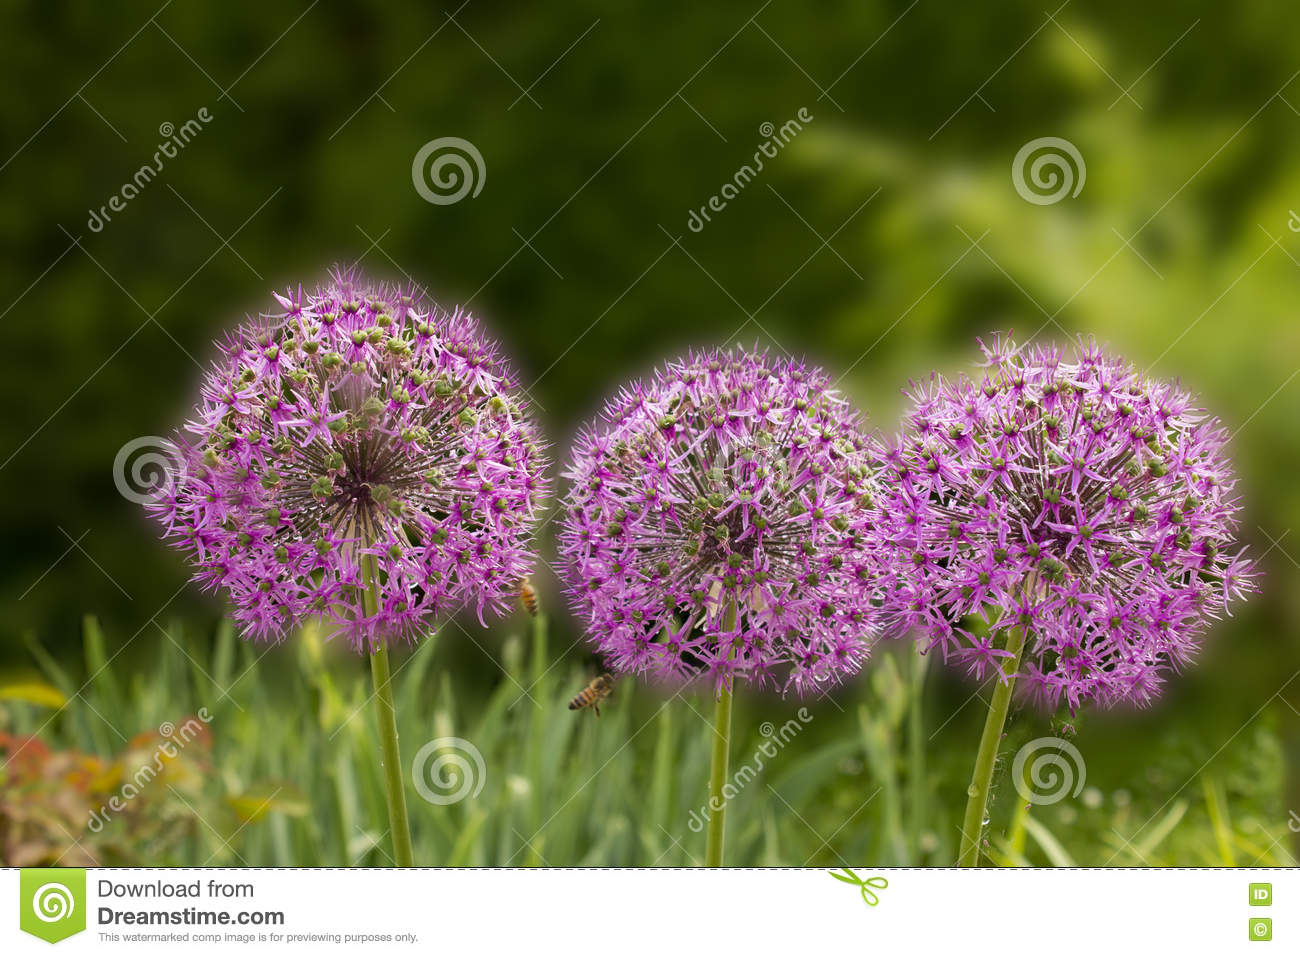 Giant Purple Allium Flower Field With Tiny Blue Flowers Stock Photo